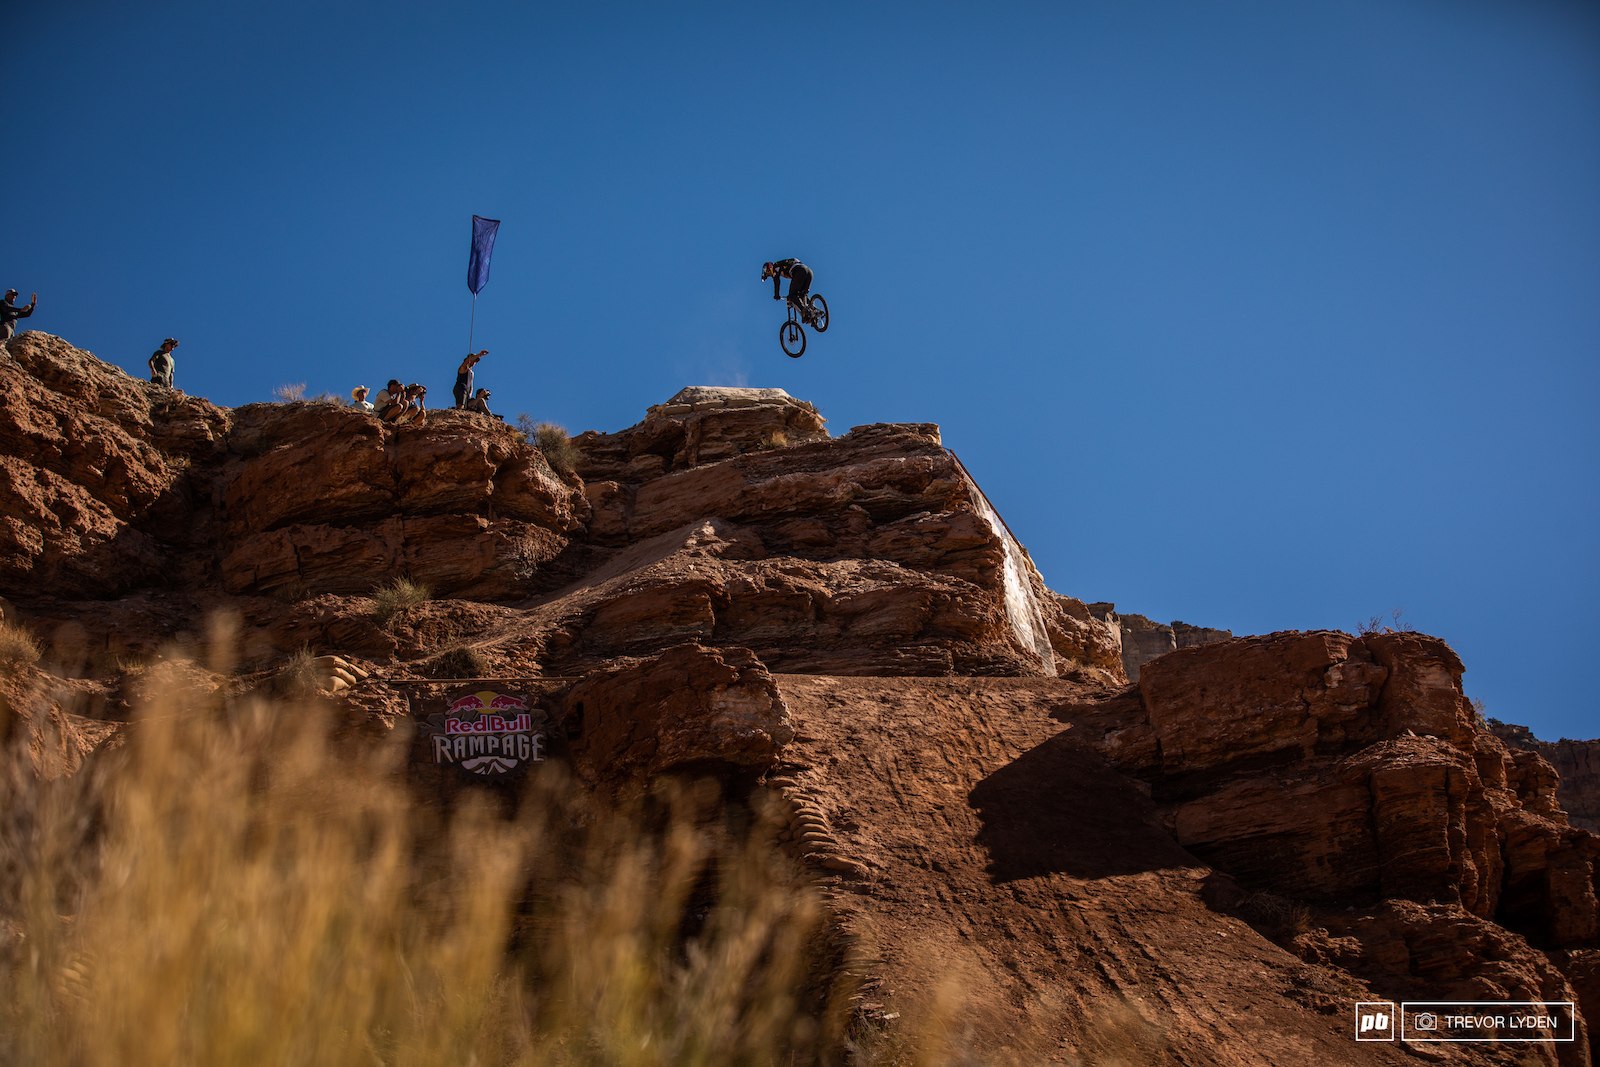 Carson went down hard after this 360 but he would have rode it out if the landing were a couple feet wider.